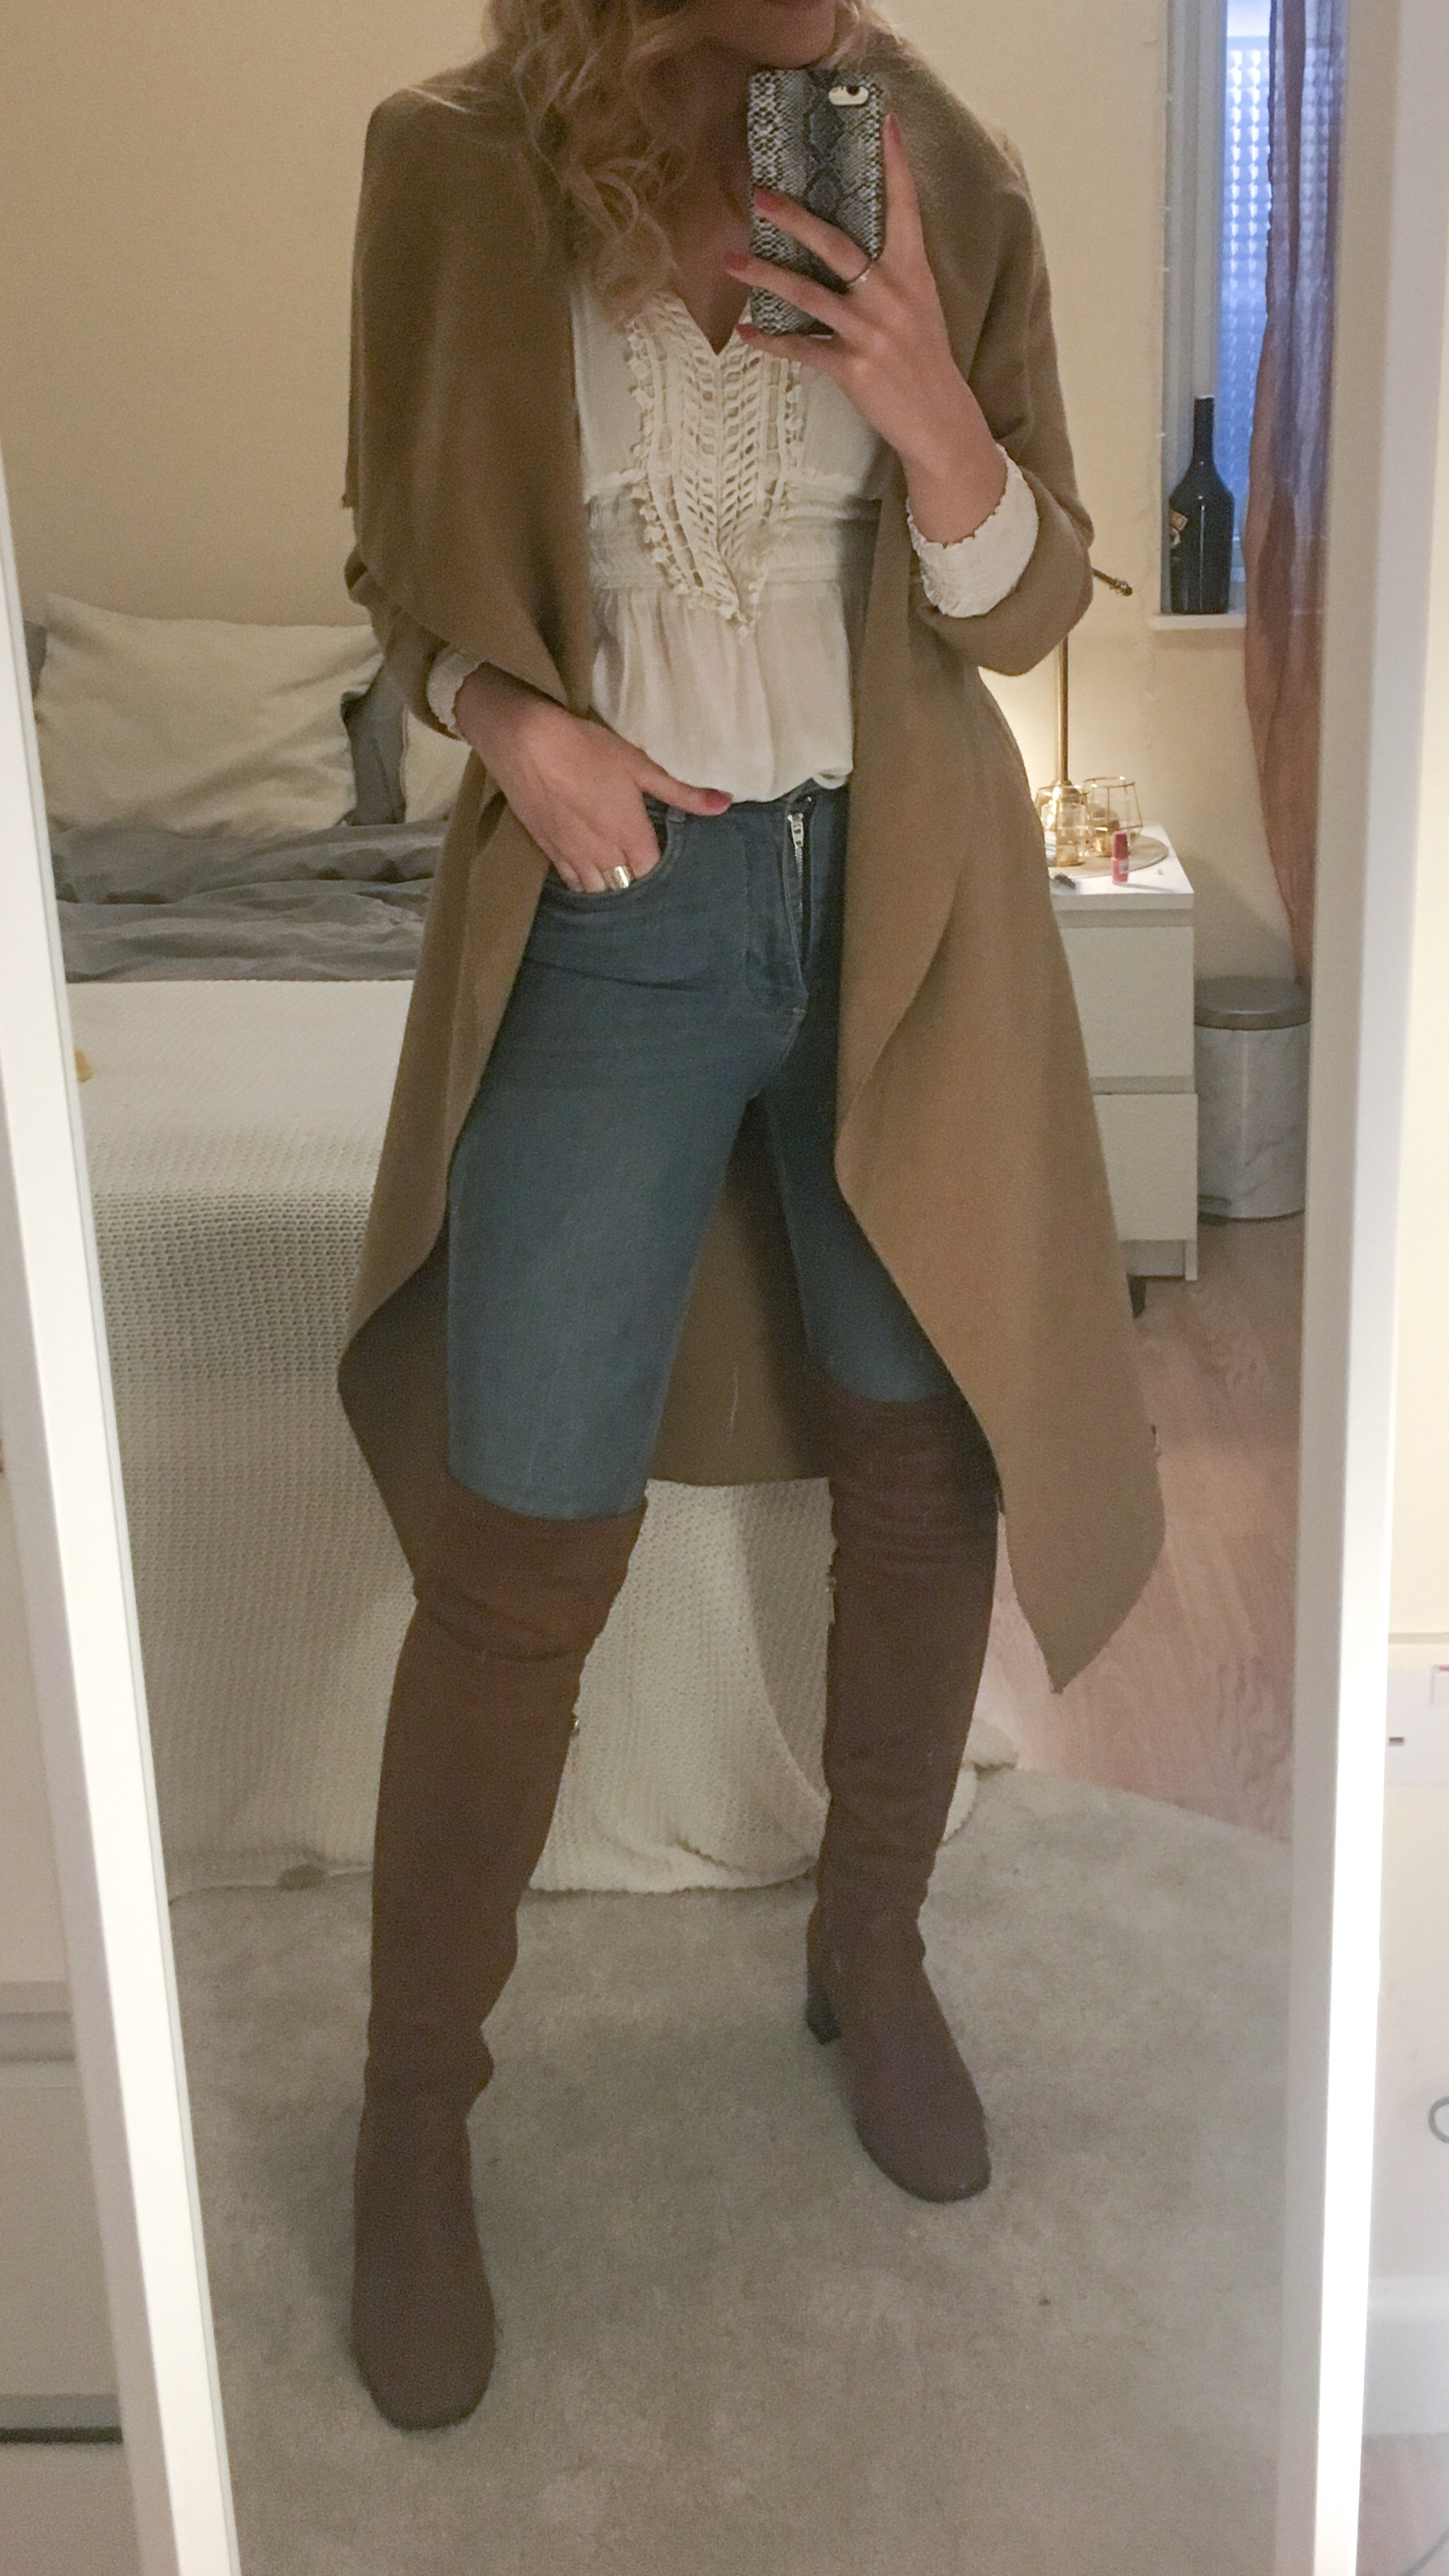 Todays outfit.